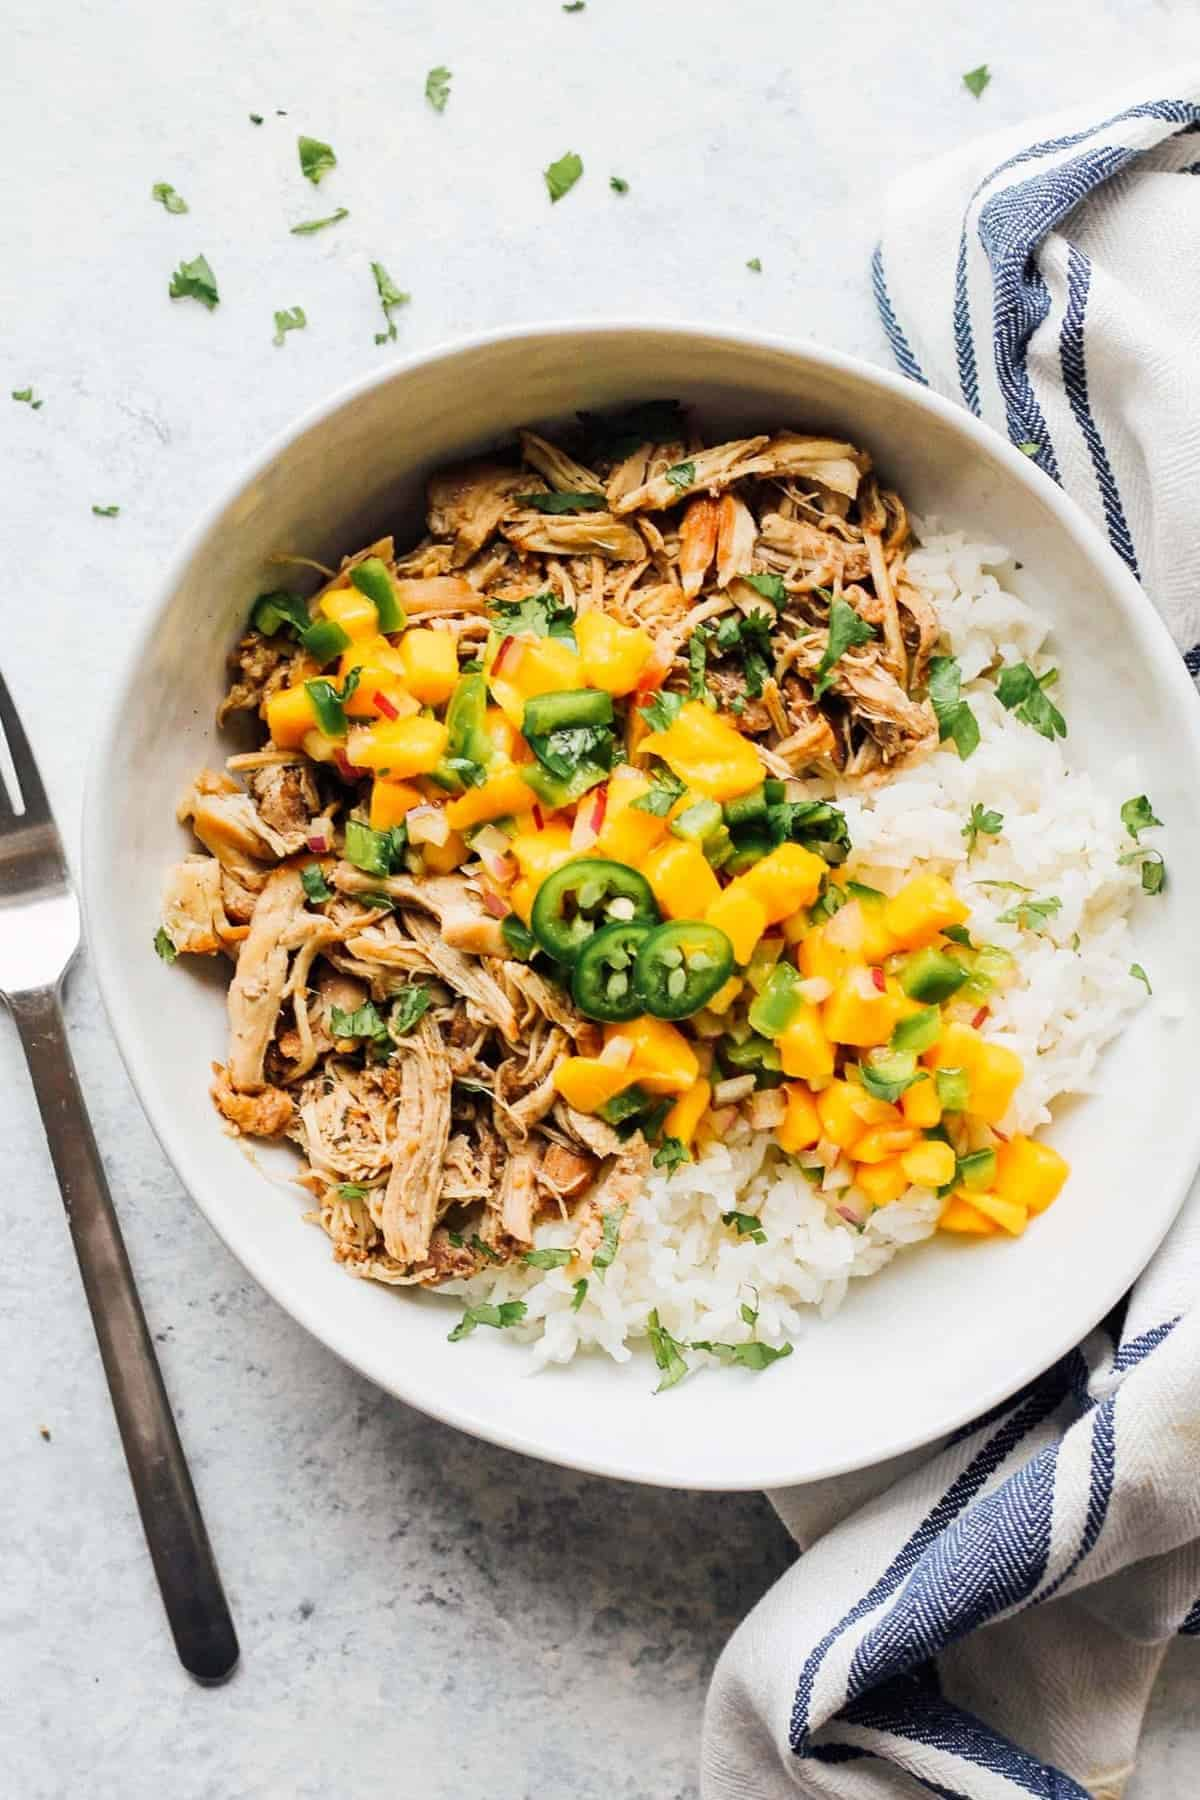 Instant pot jerk chicken served with rice in a white bowl